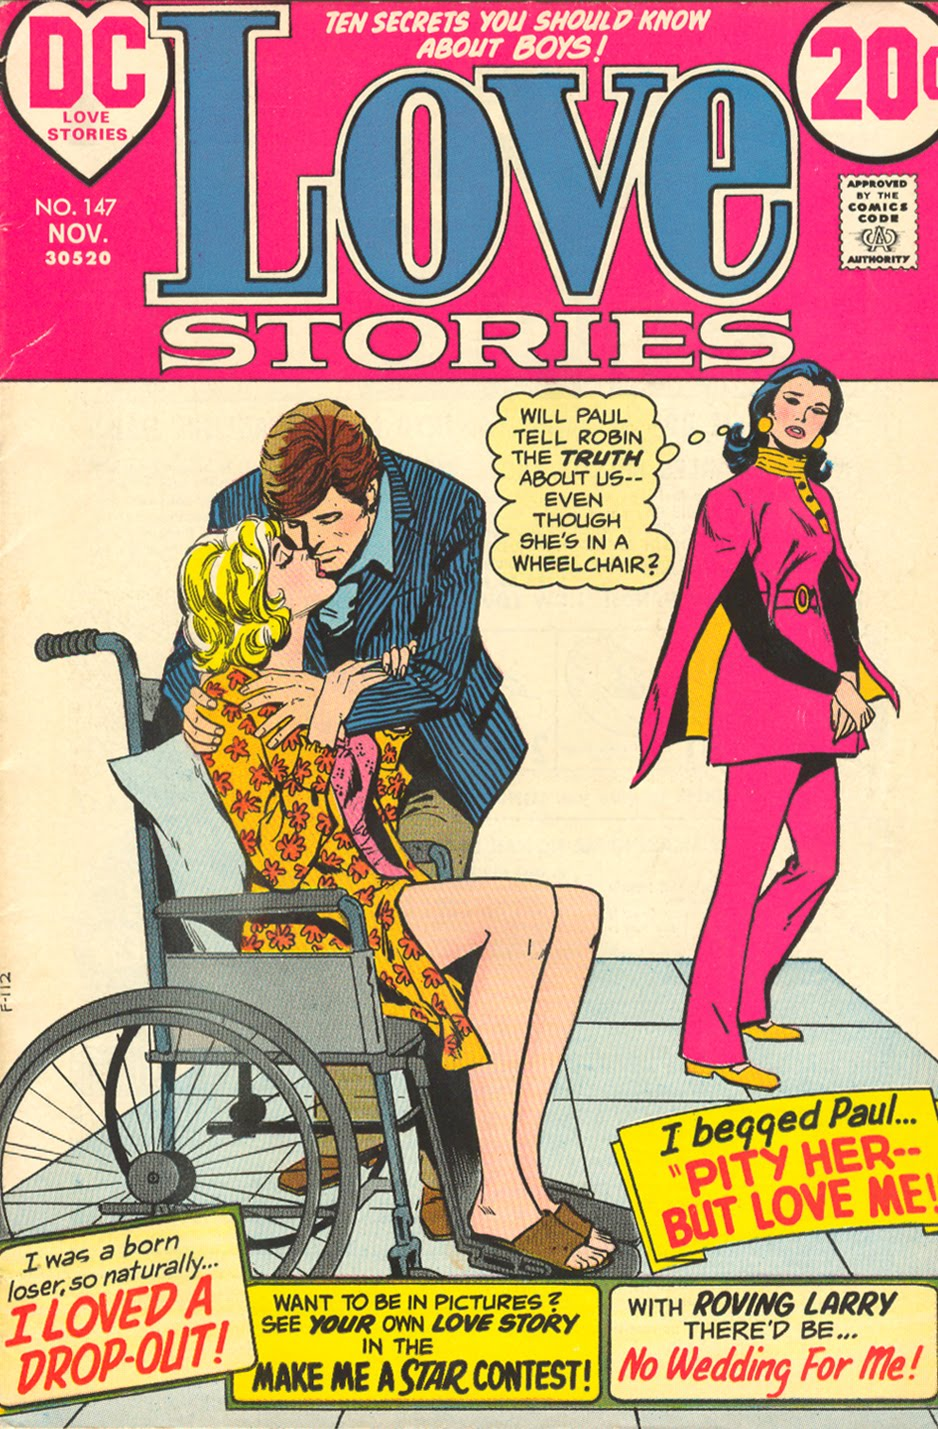 "DIAGNOSIS: Hit by a car while trying to catch up with two-timing Paul ""Pity Her -- But Love Me!""  Love Stories  #147 (November 1972)"